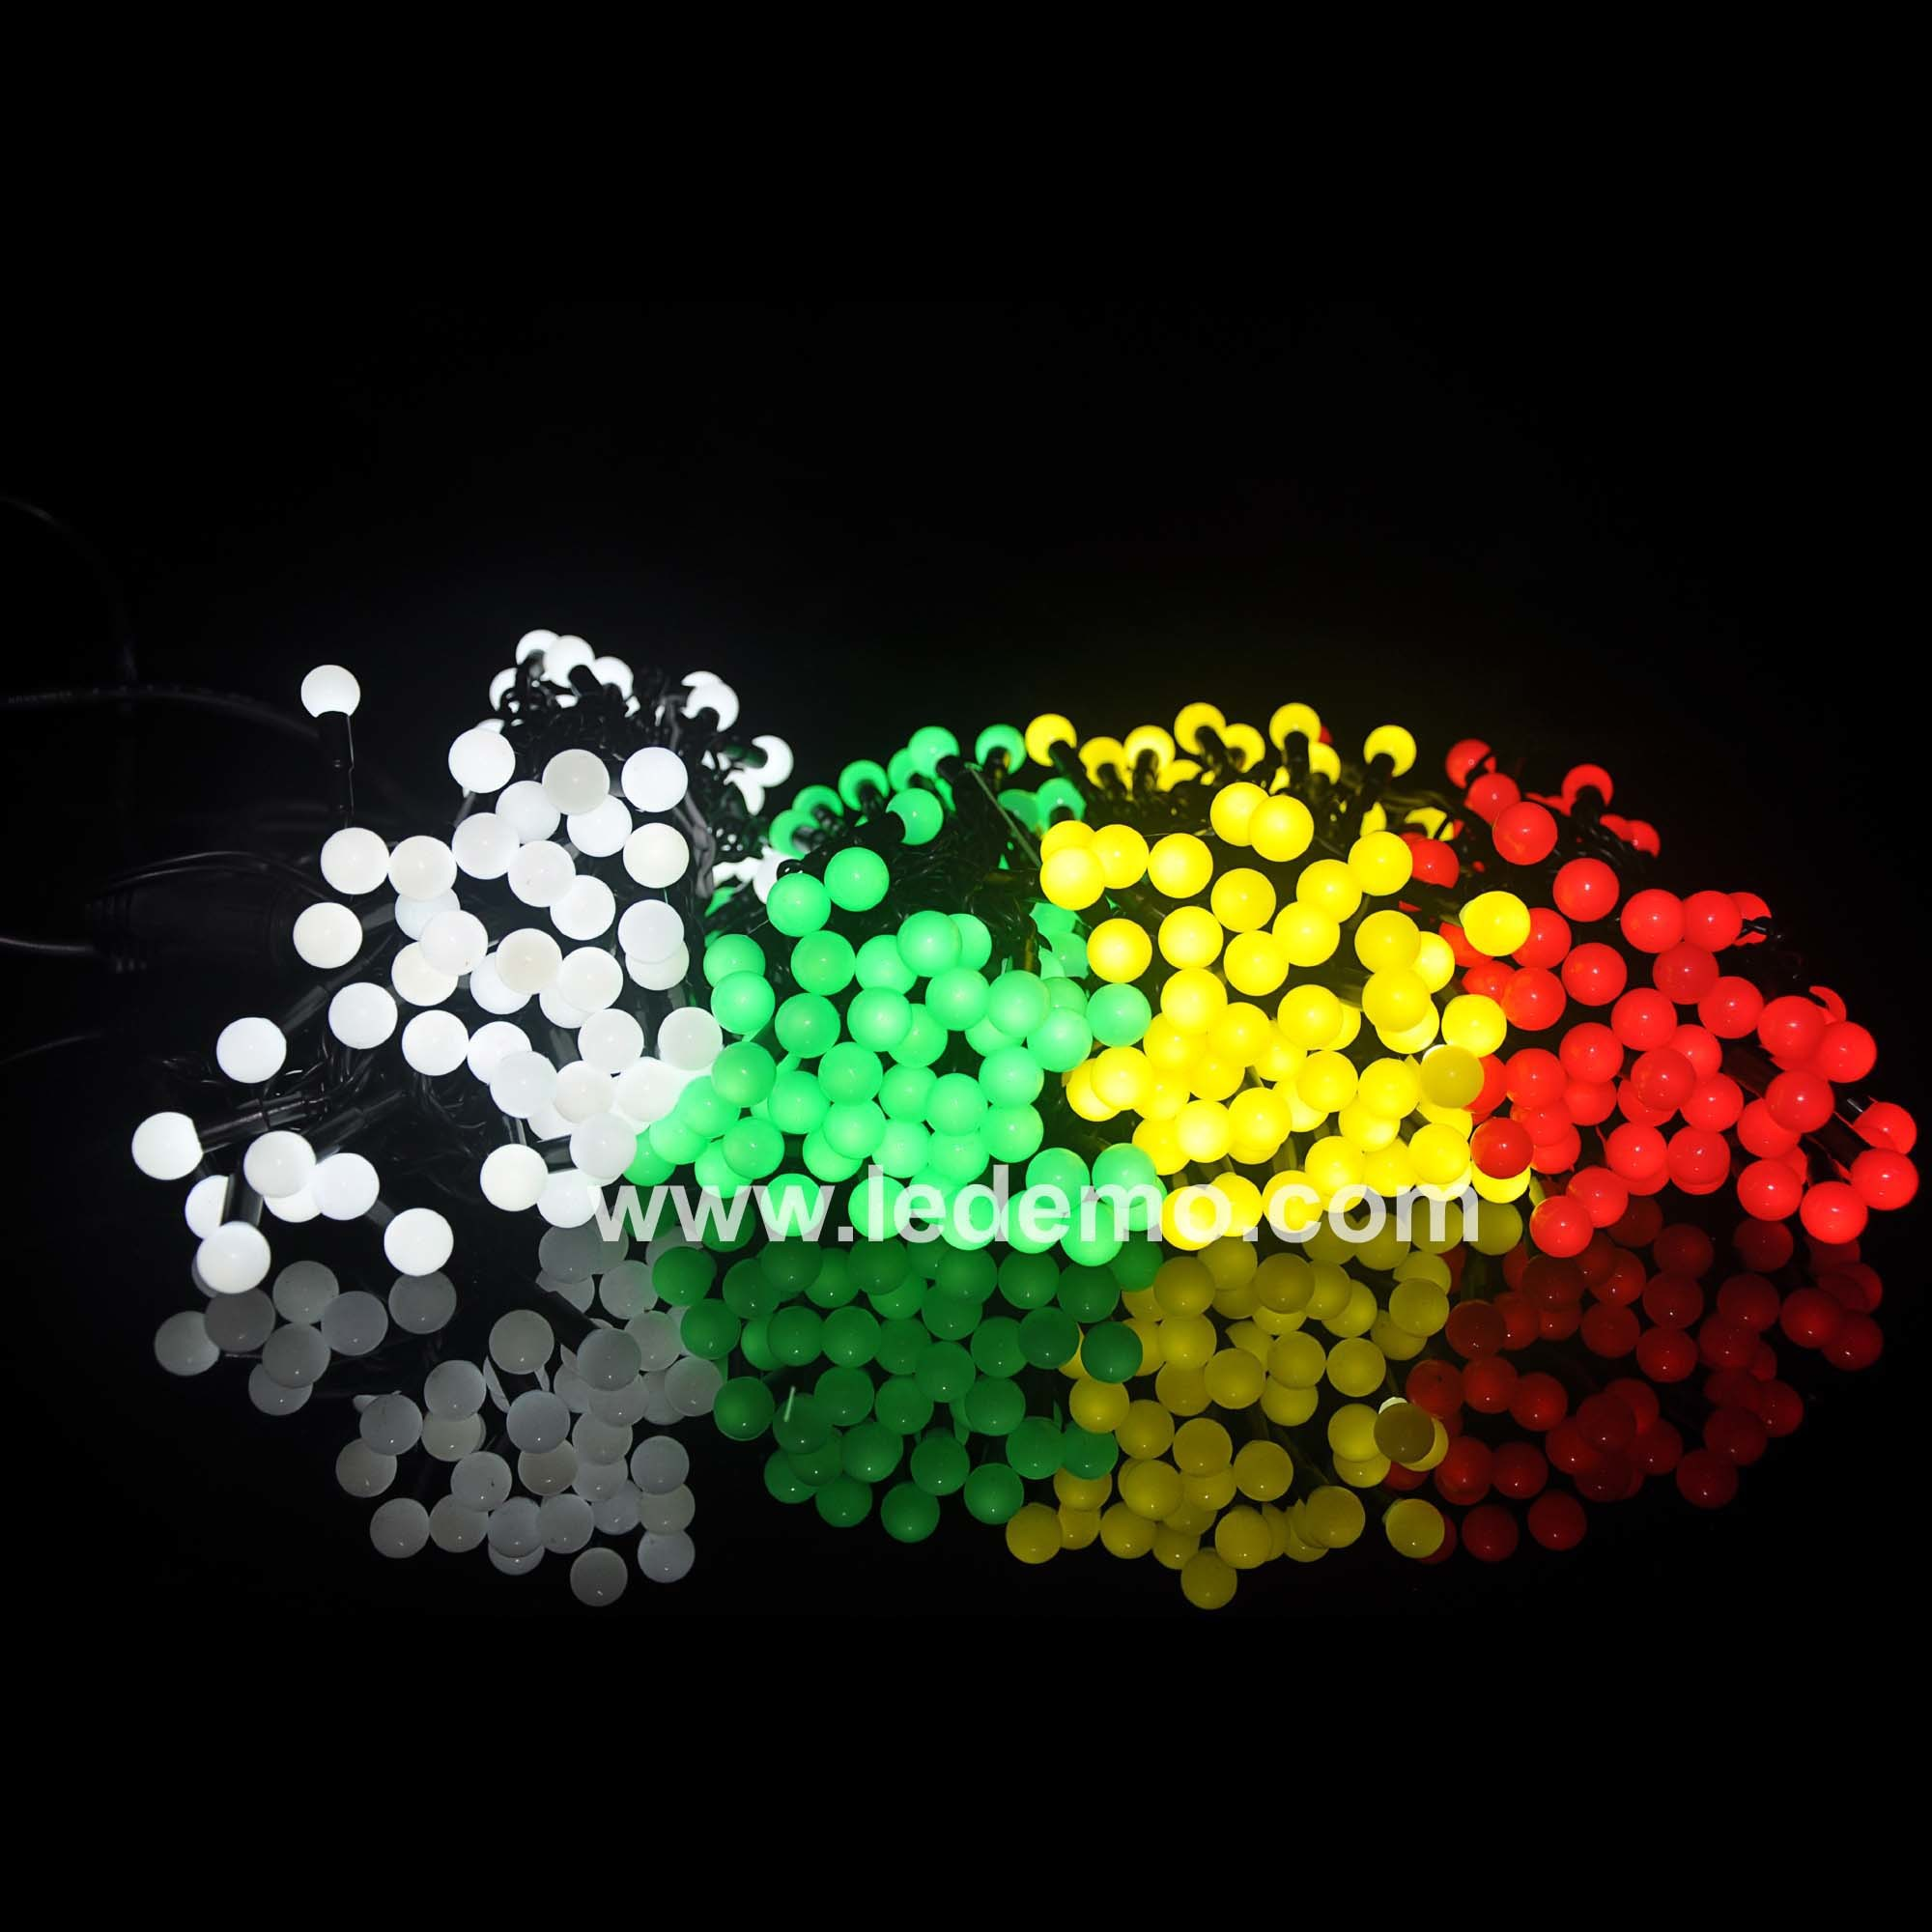 LED 10m Christmas String Ball Light